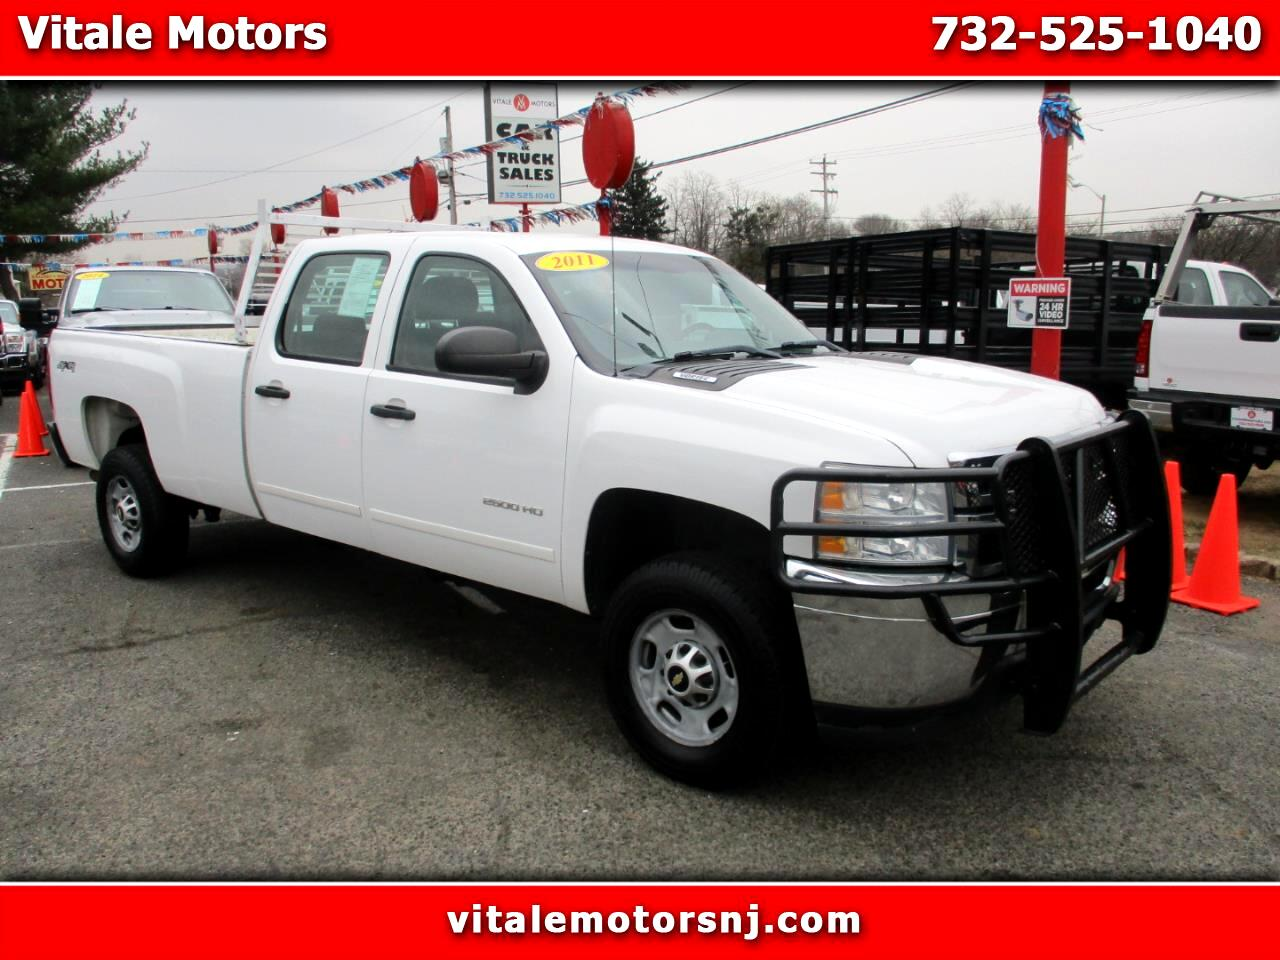 2011 Chevrolet Silverado 2500HD CREW CAB 4X4 LONG BED